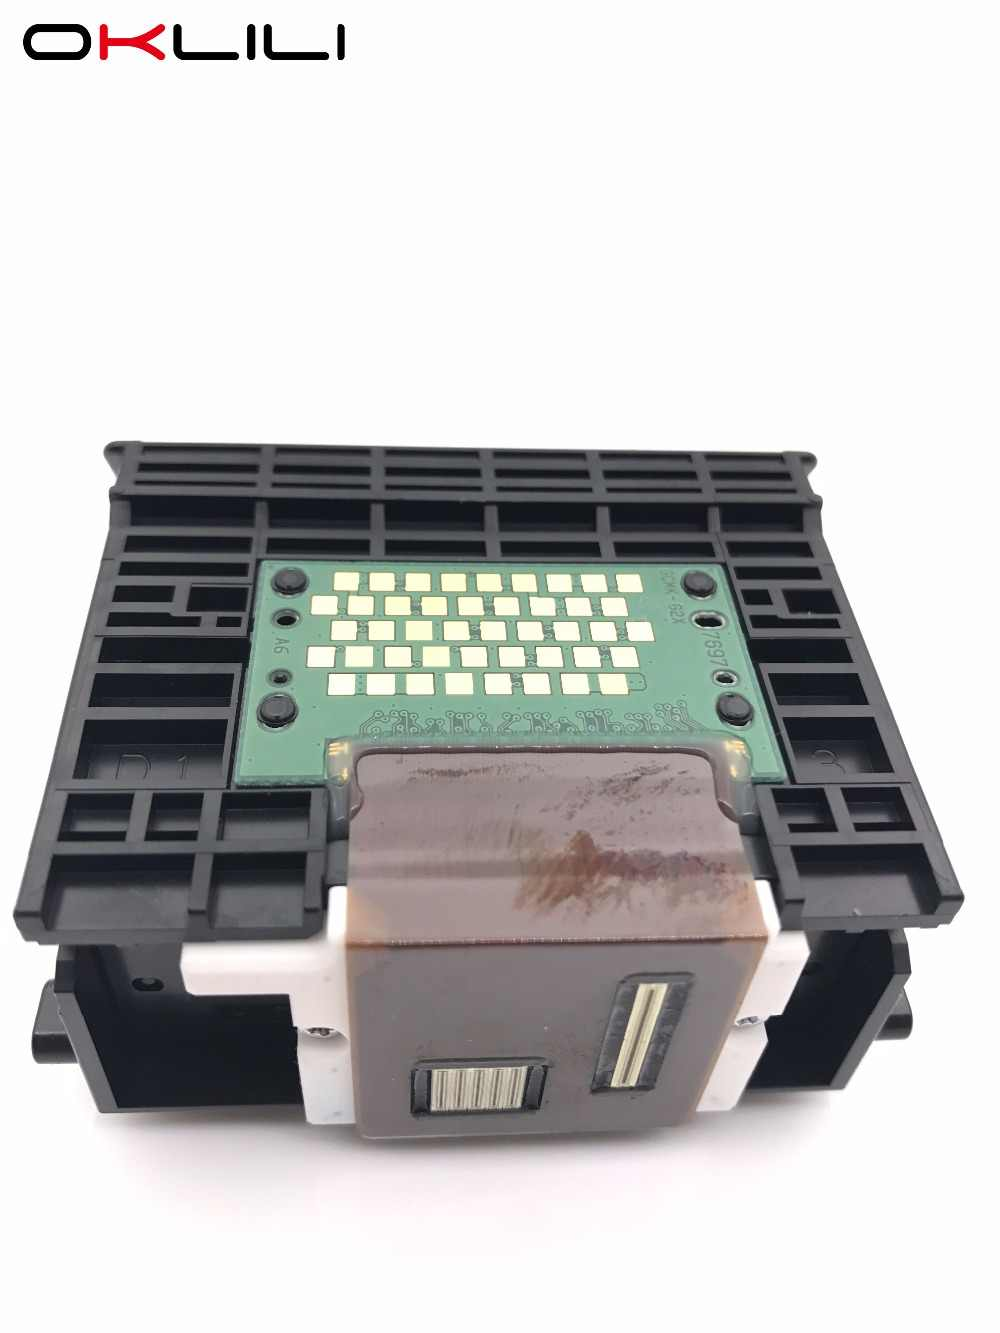 Oklili Asli QY6-0070 QY6-0070-000 Printhead Print Head Printer Kepala untuk Canon MP510 MP520 MX700 IP3300 IP3500